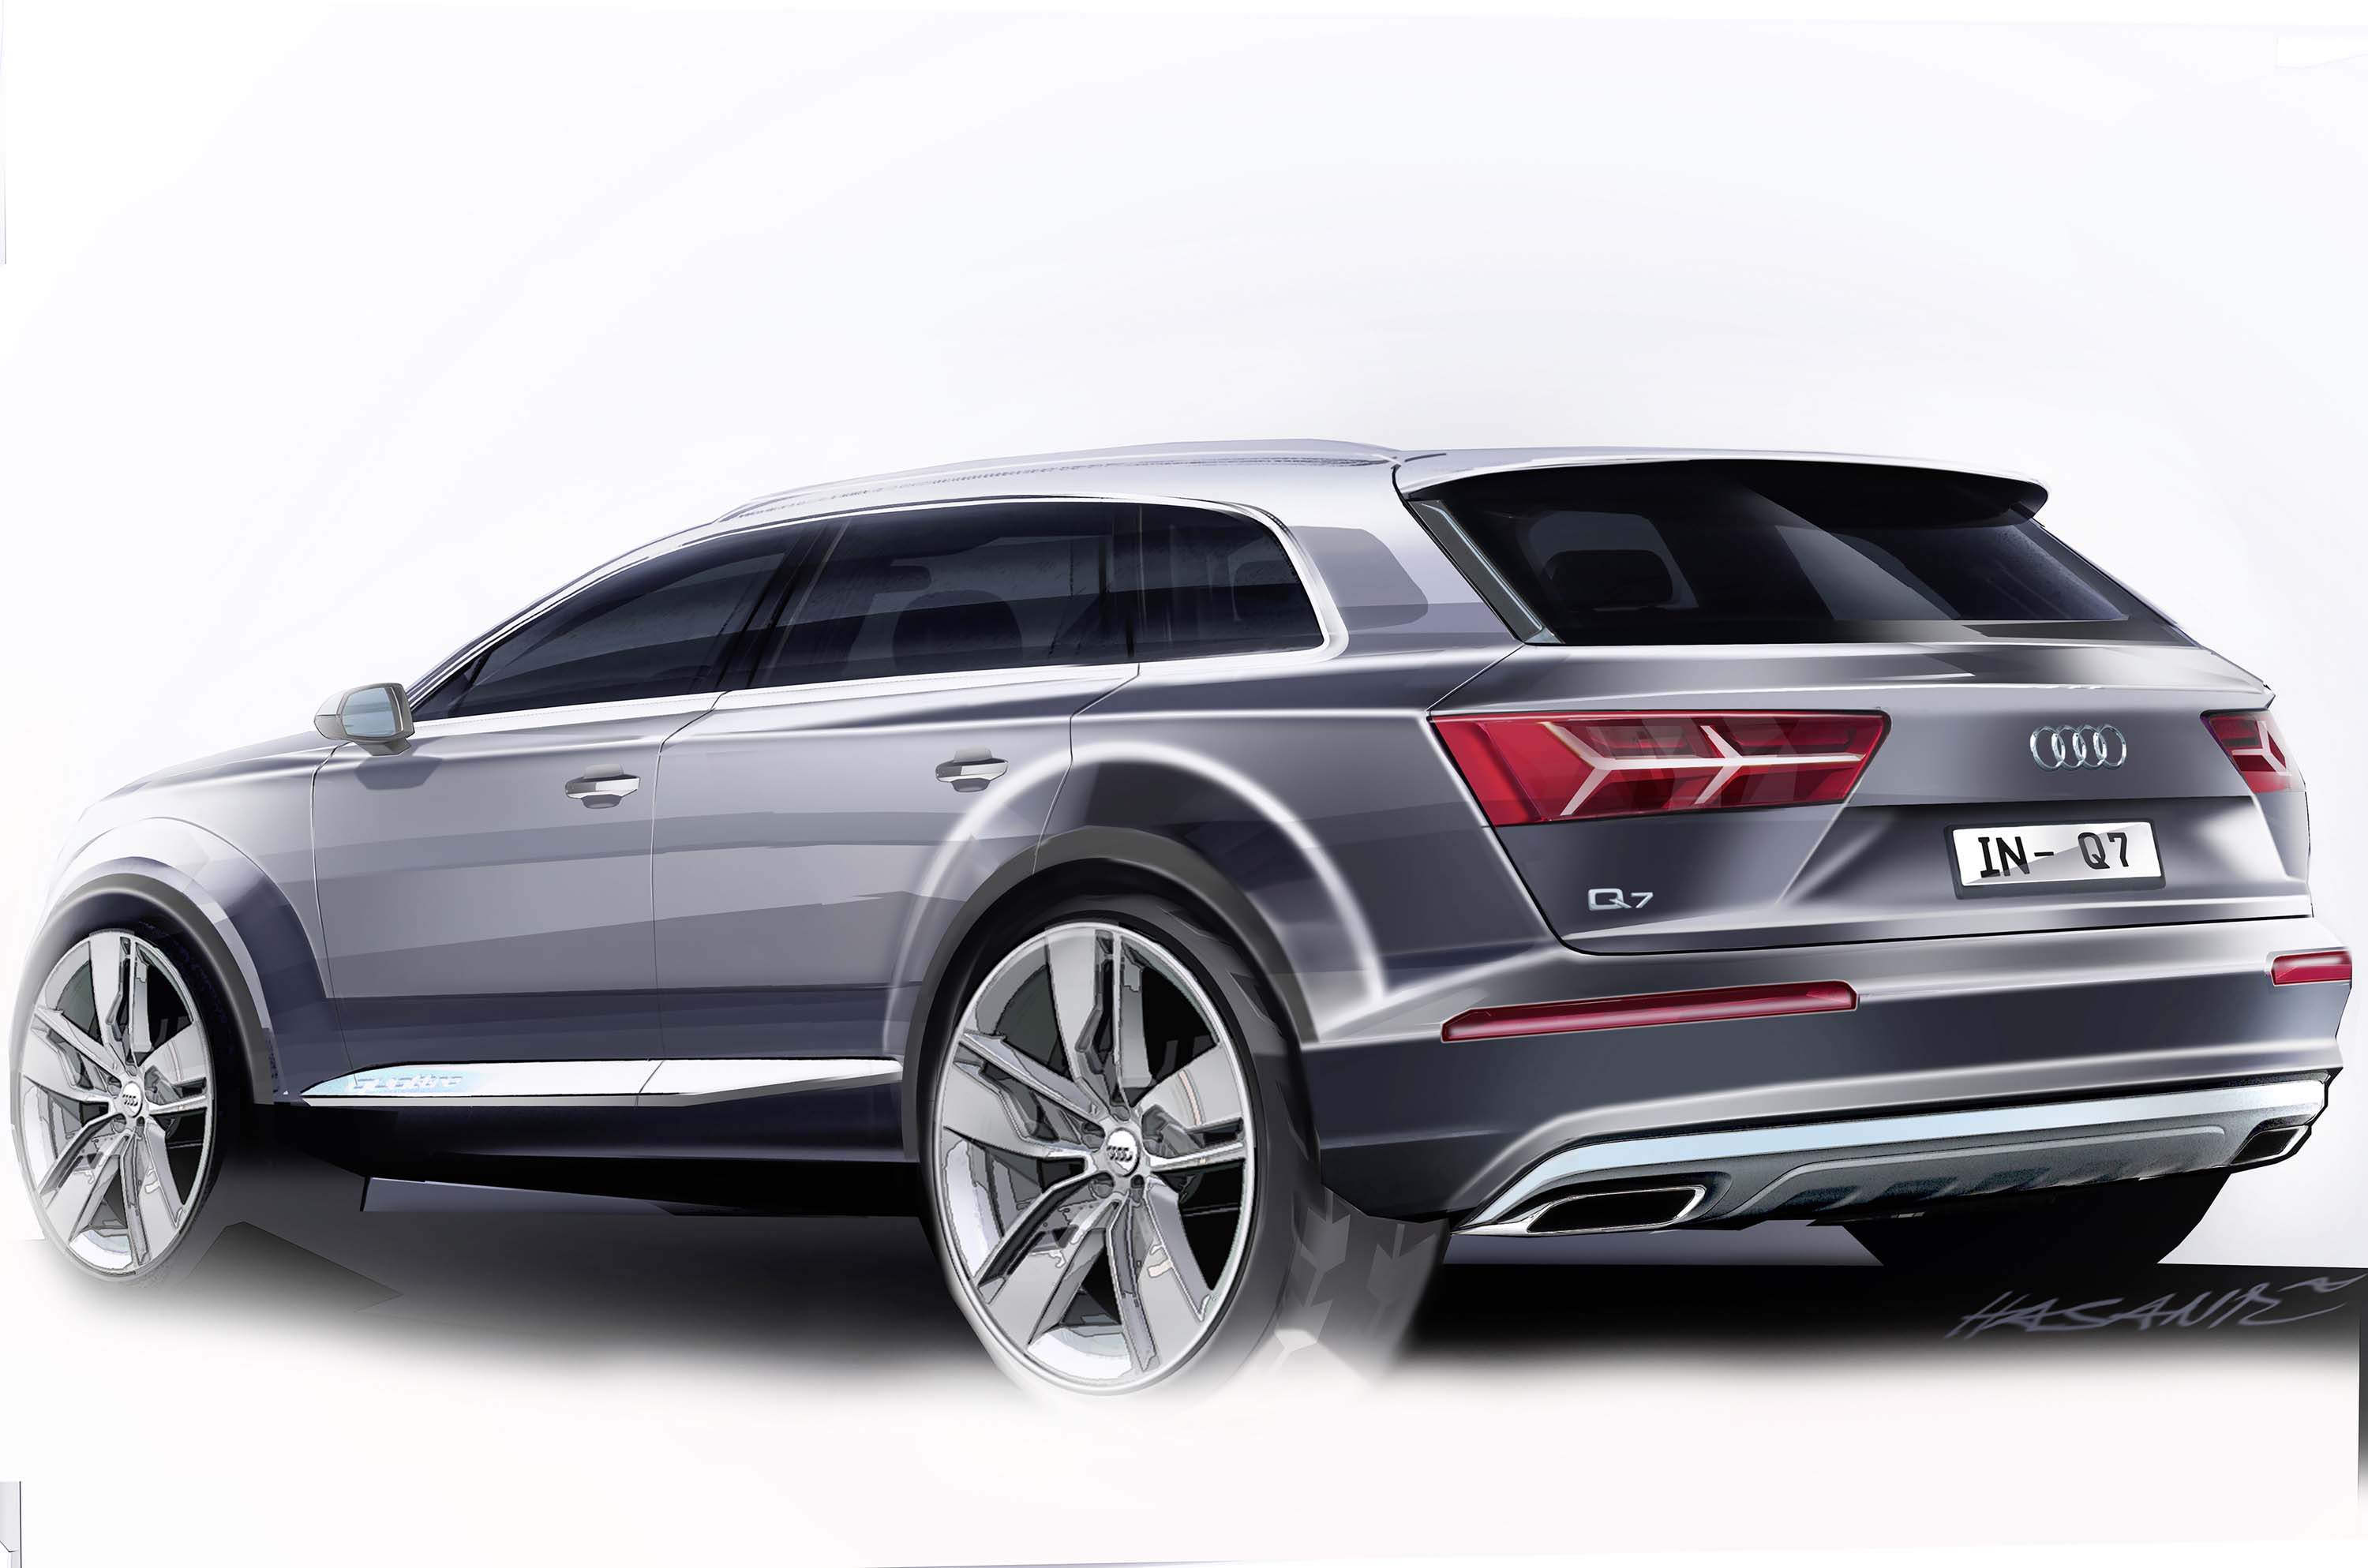 audi q7 second generation 7 seater suv debuts image 295894. Black Bedroom Furniture Sets. Home Design Ideas